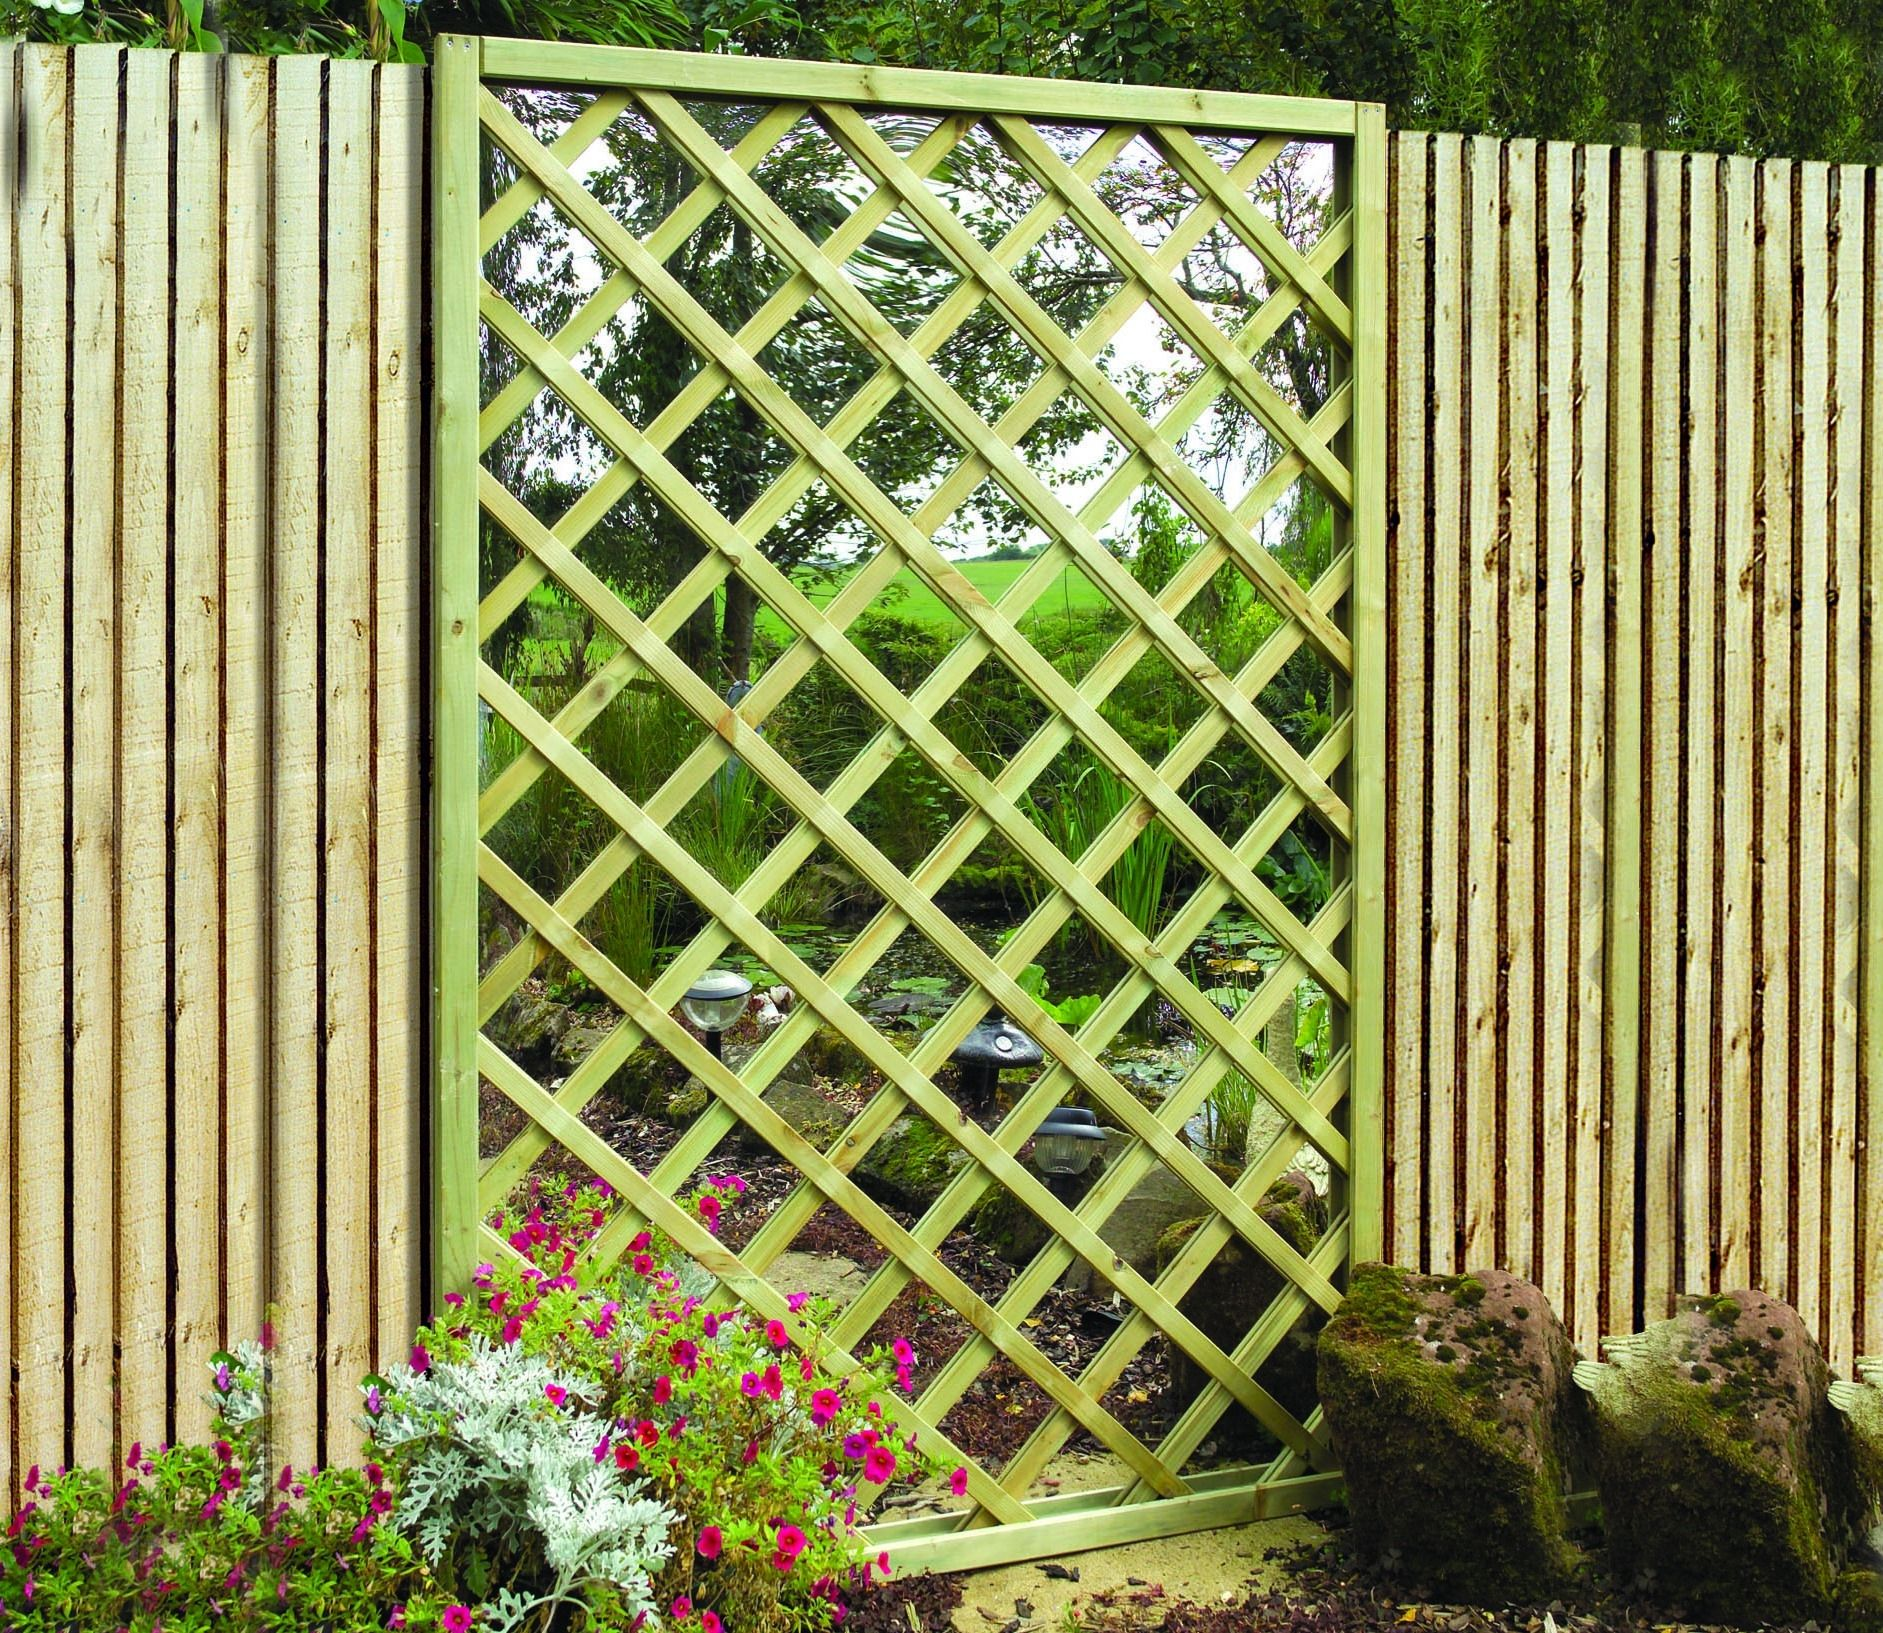 Garden decorations for sale - Garden Mirror Lattice Screen From Grange For Sale